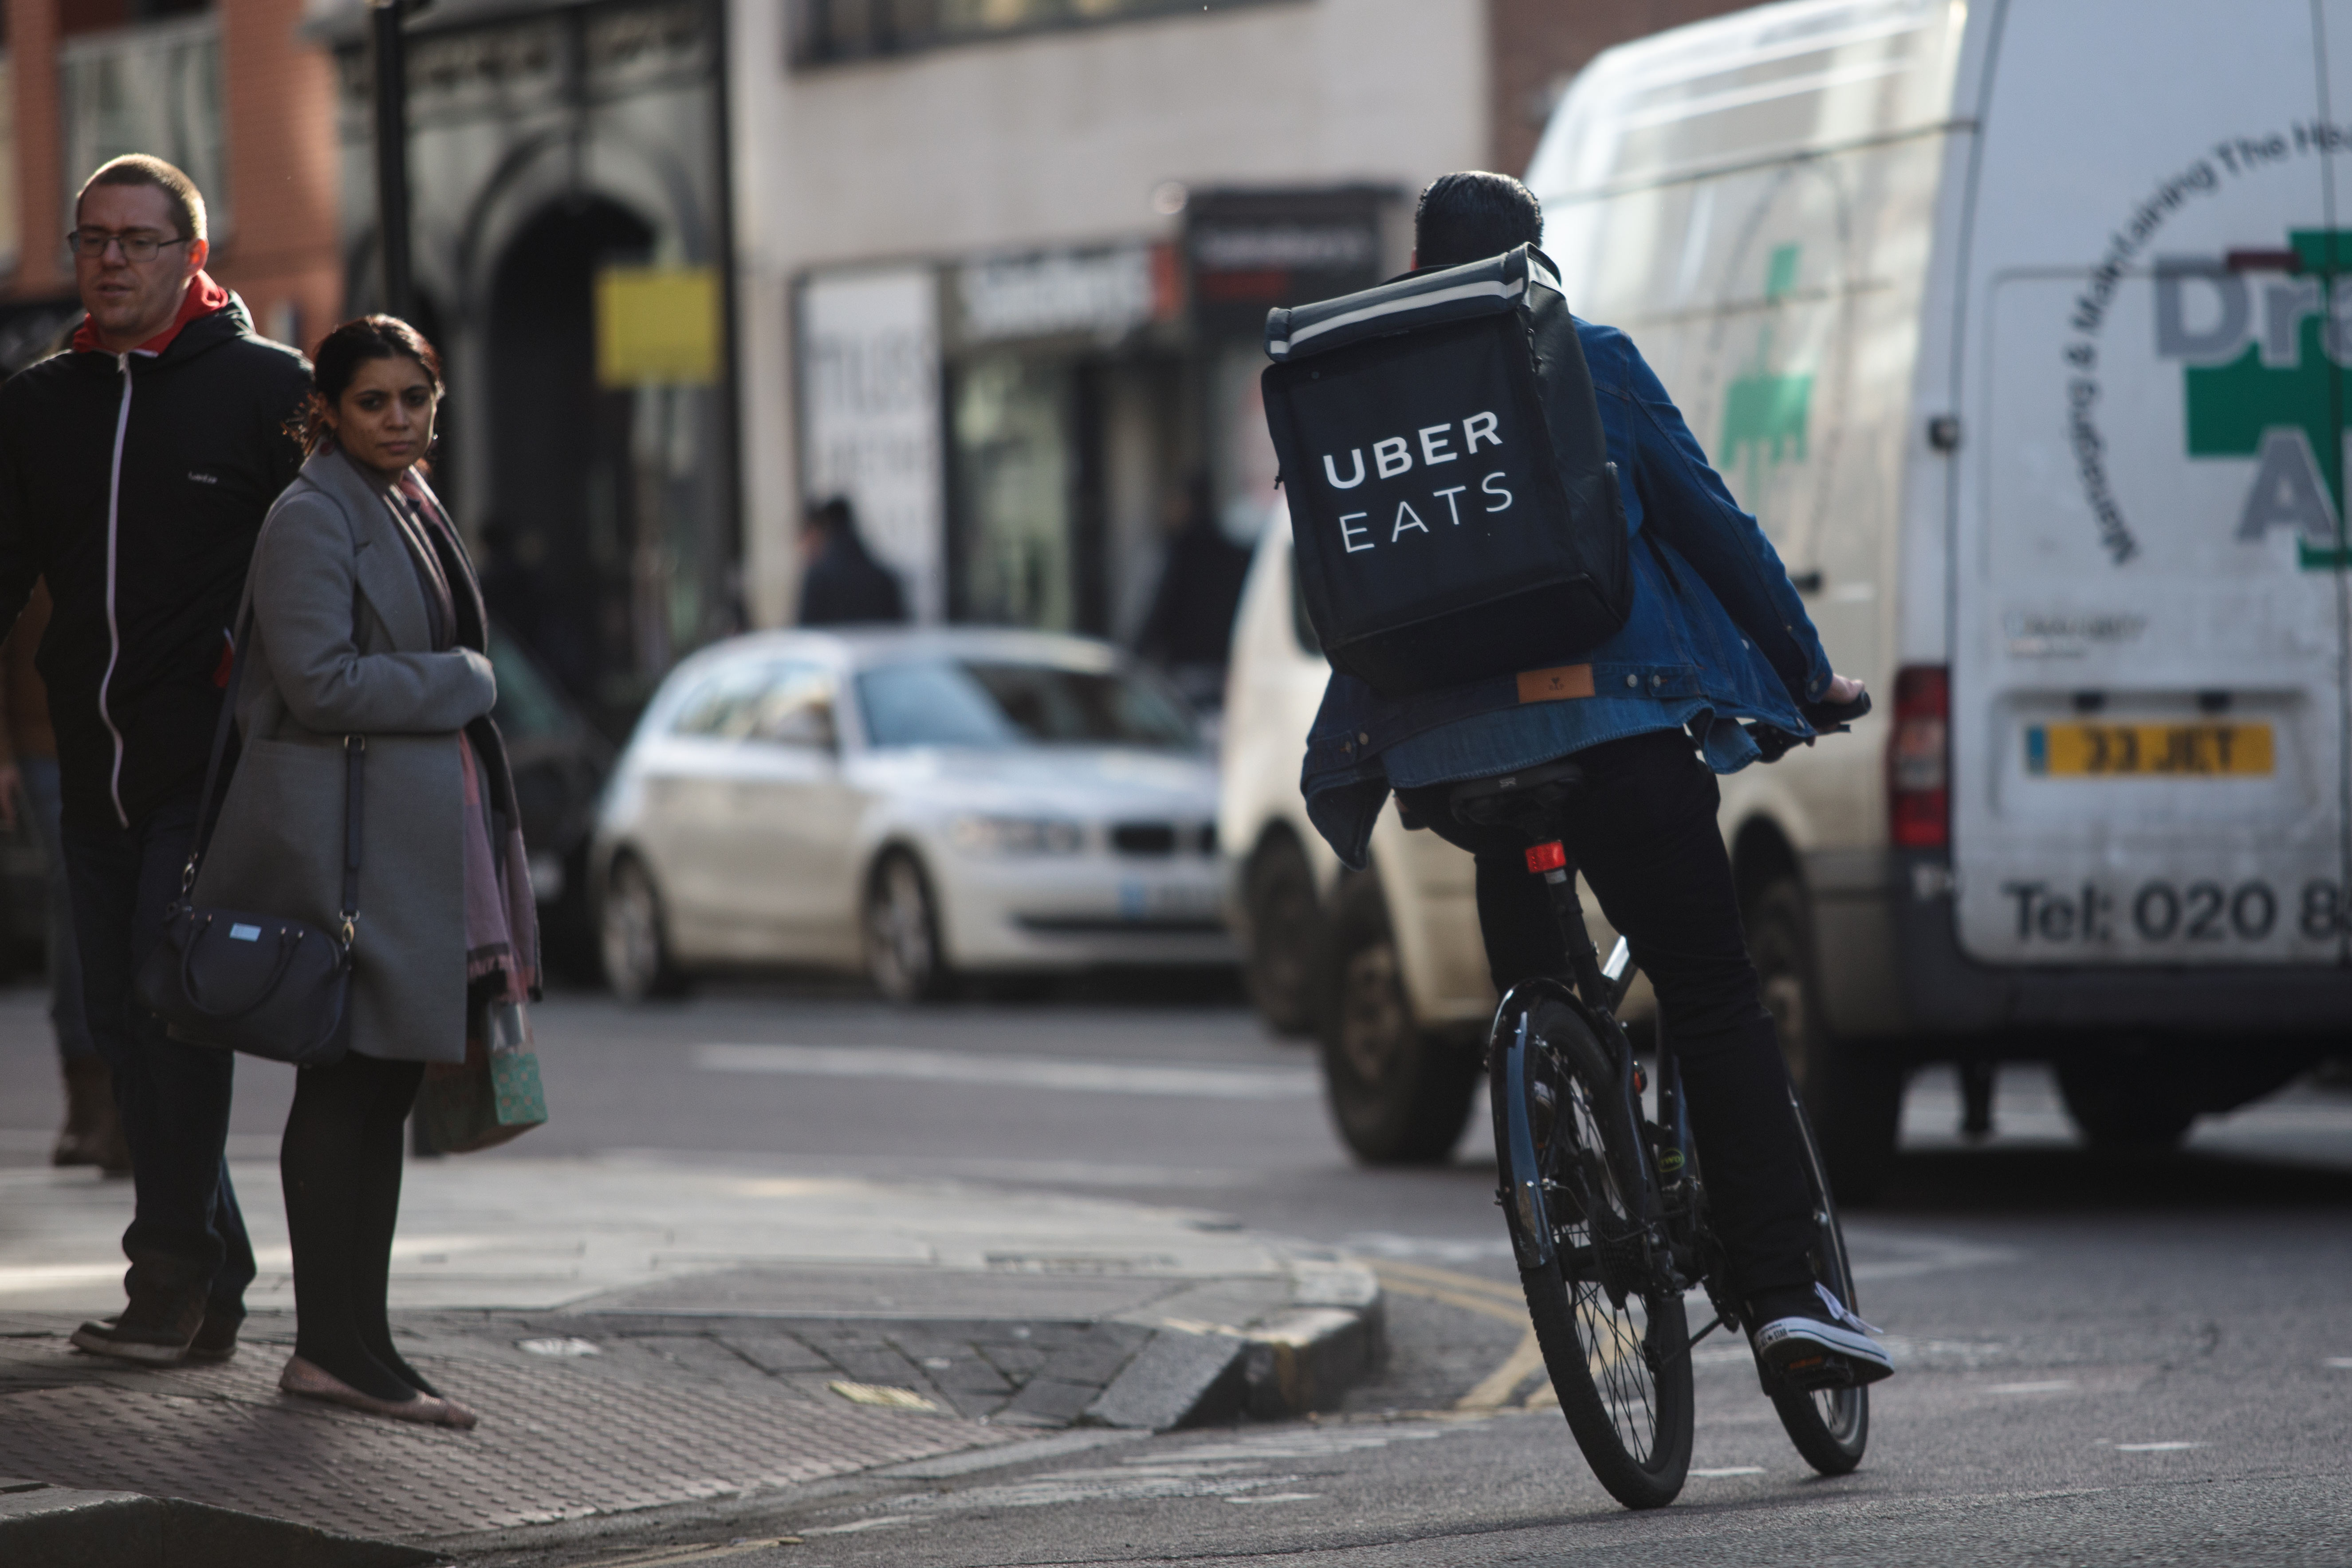 Uber Eats Is Turning Into A Pyramid Scheme